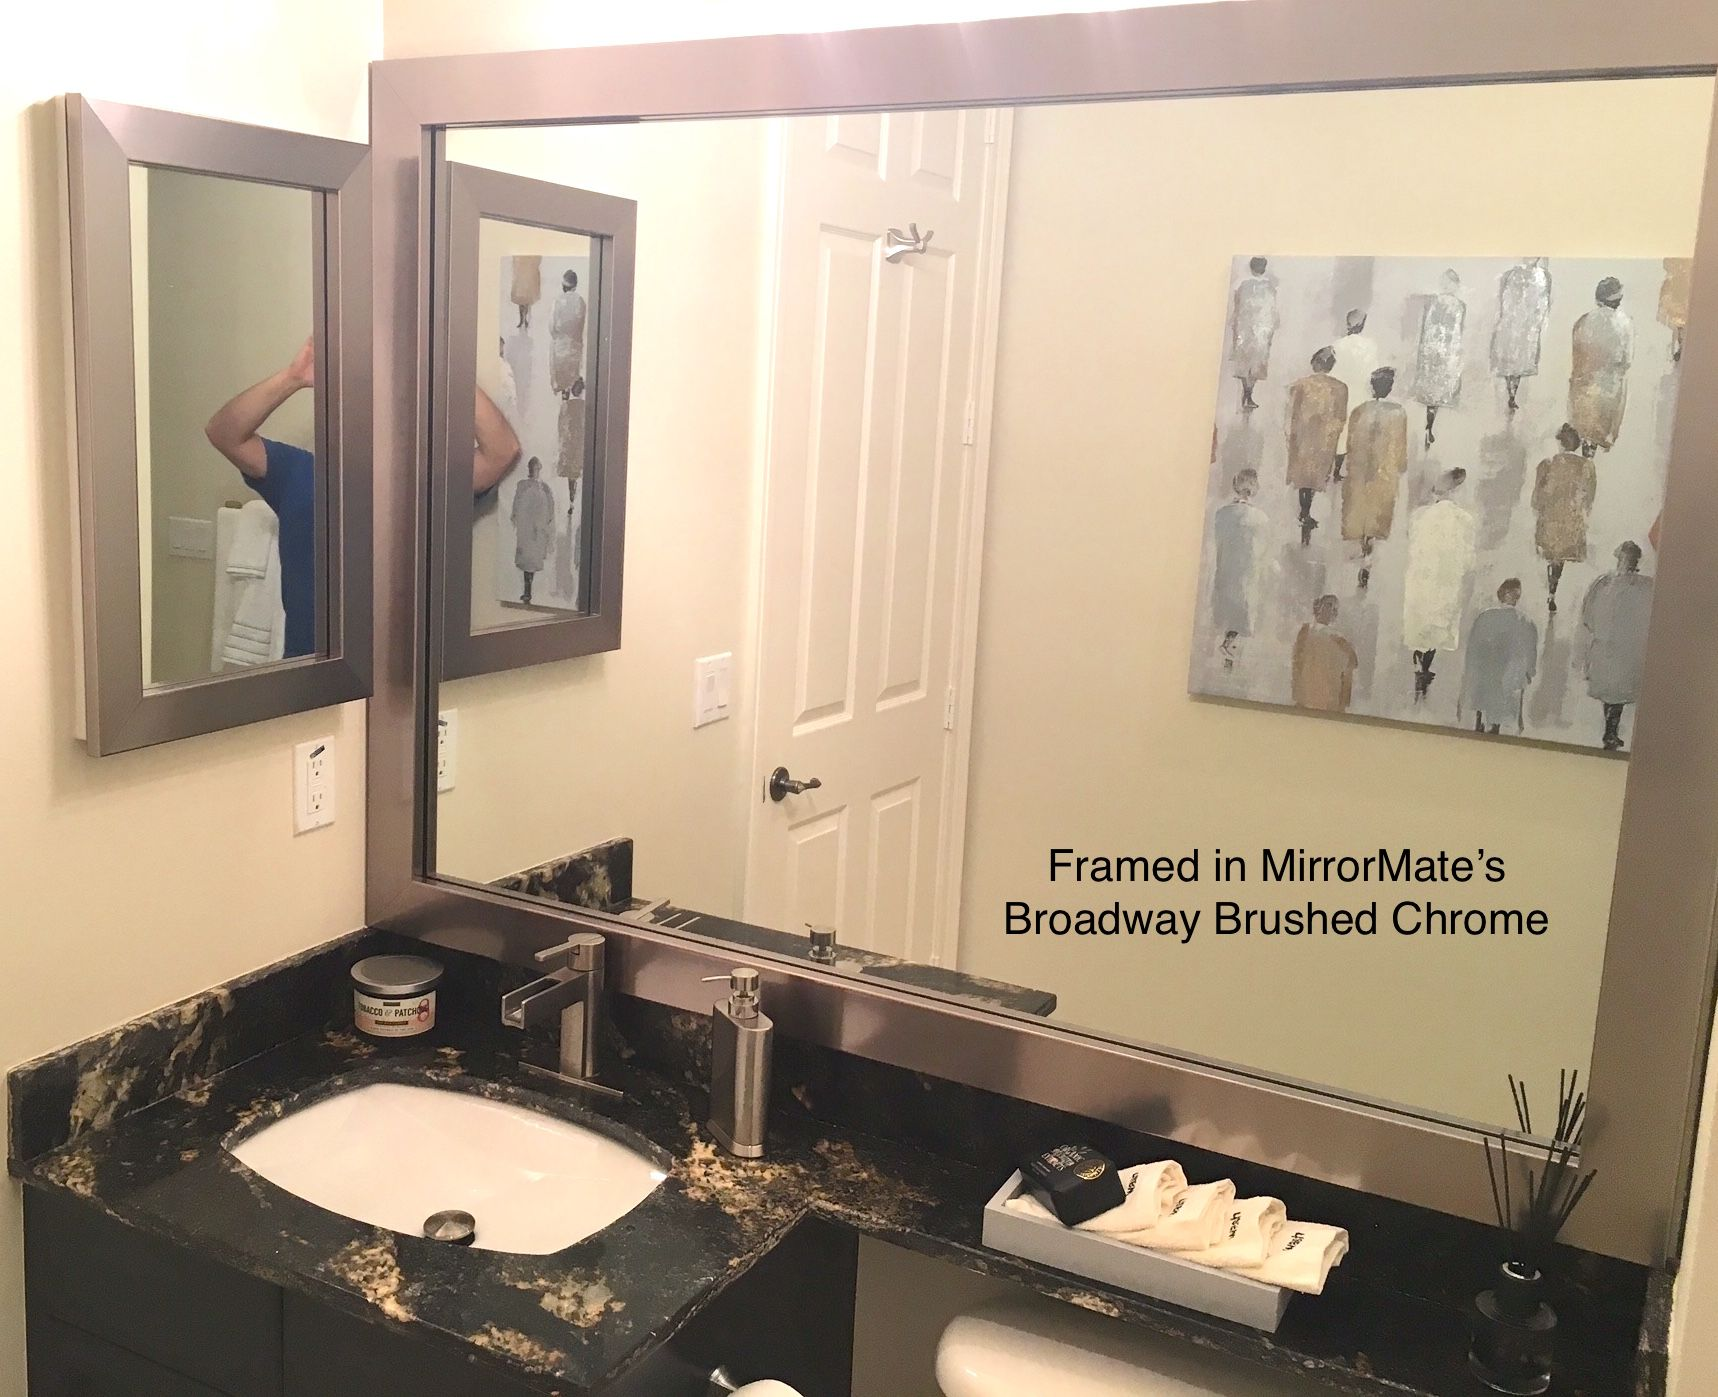 a mirrormate frame was added to both the existing wall mirror and the medicine cabinet on - Mirrormate Frames